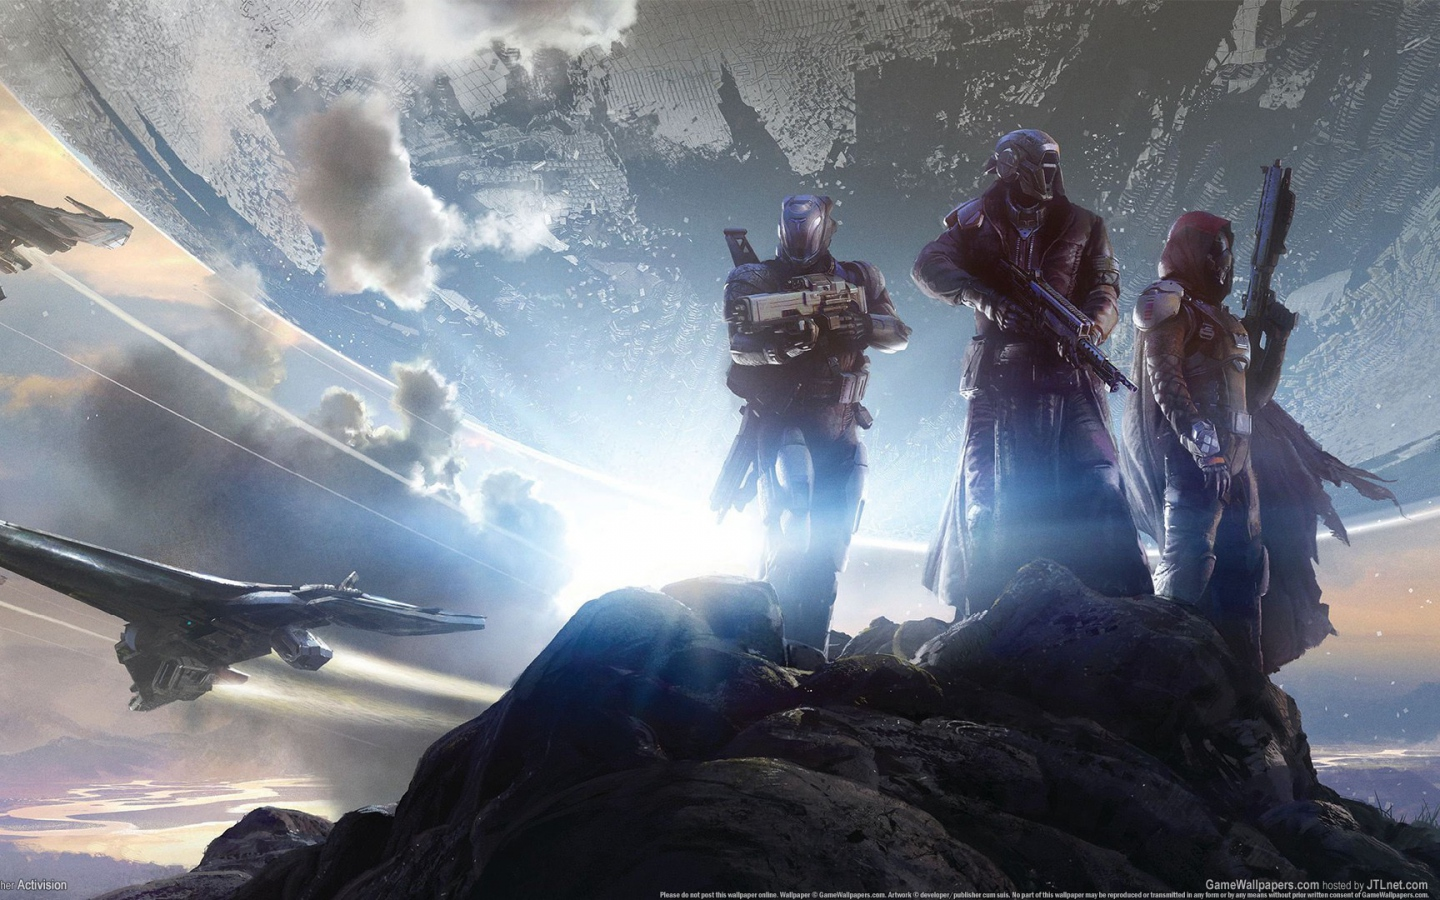 destiny_shooter_heroes_warriors_spaceships_weapons_99670_1440x900.jpg